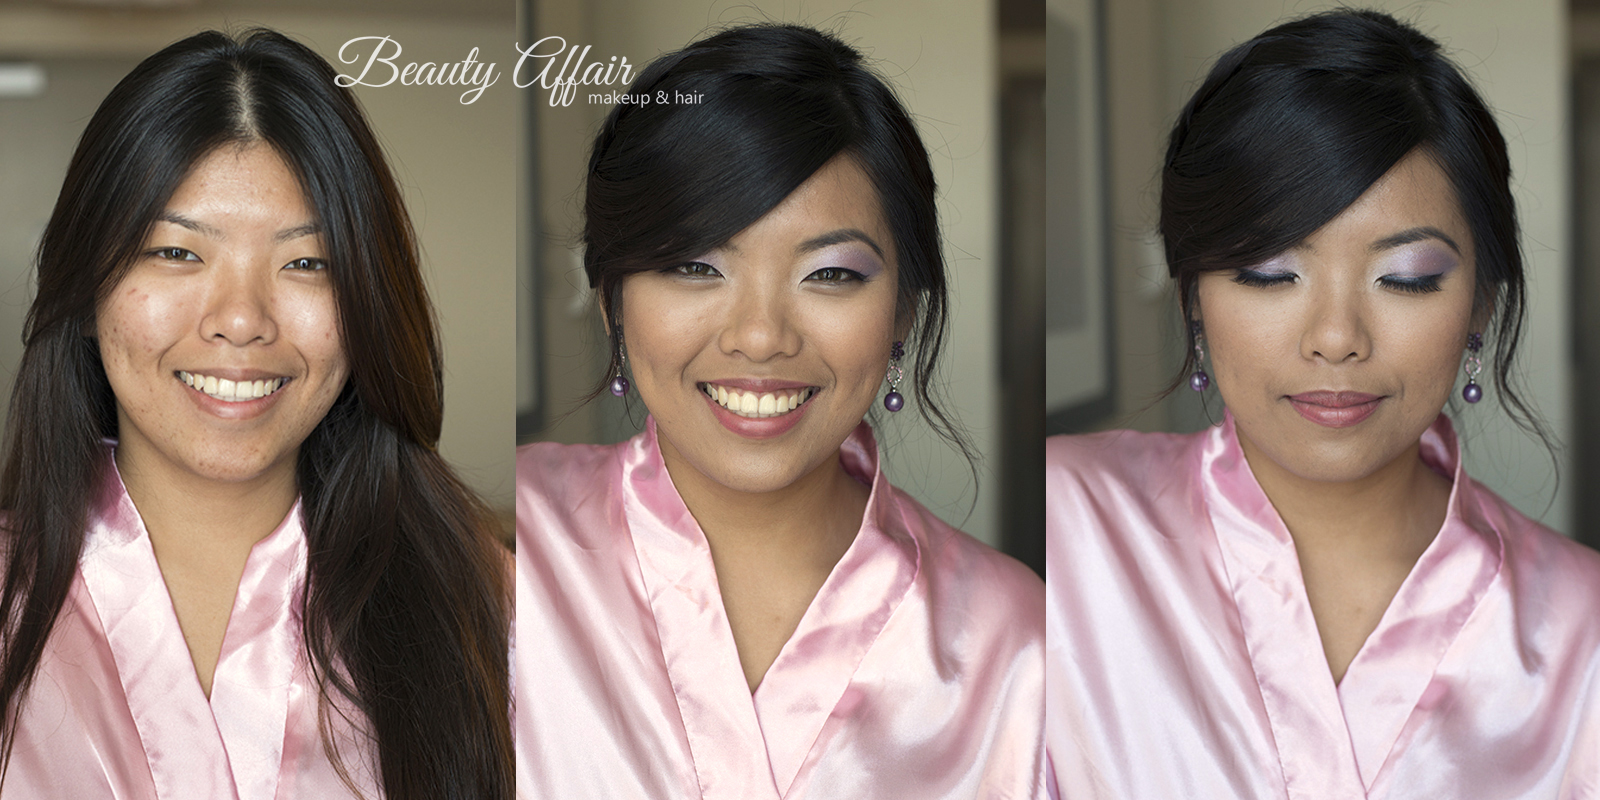 Beauty Affair makeup and makeup Los Angeles before and after bridesmaid pink lips purple eyeshadow.jpg